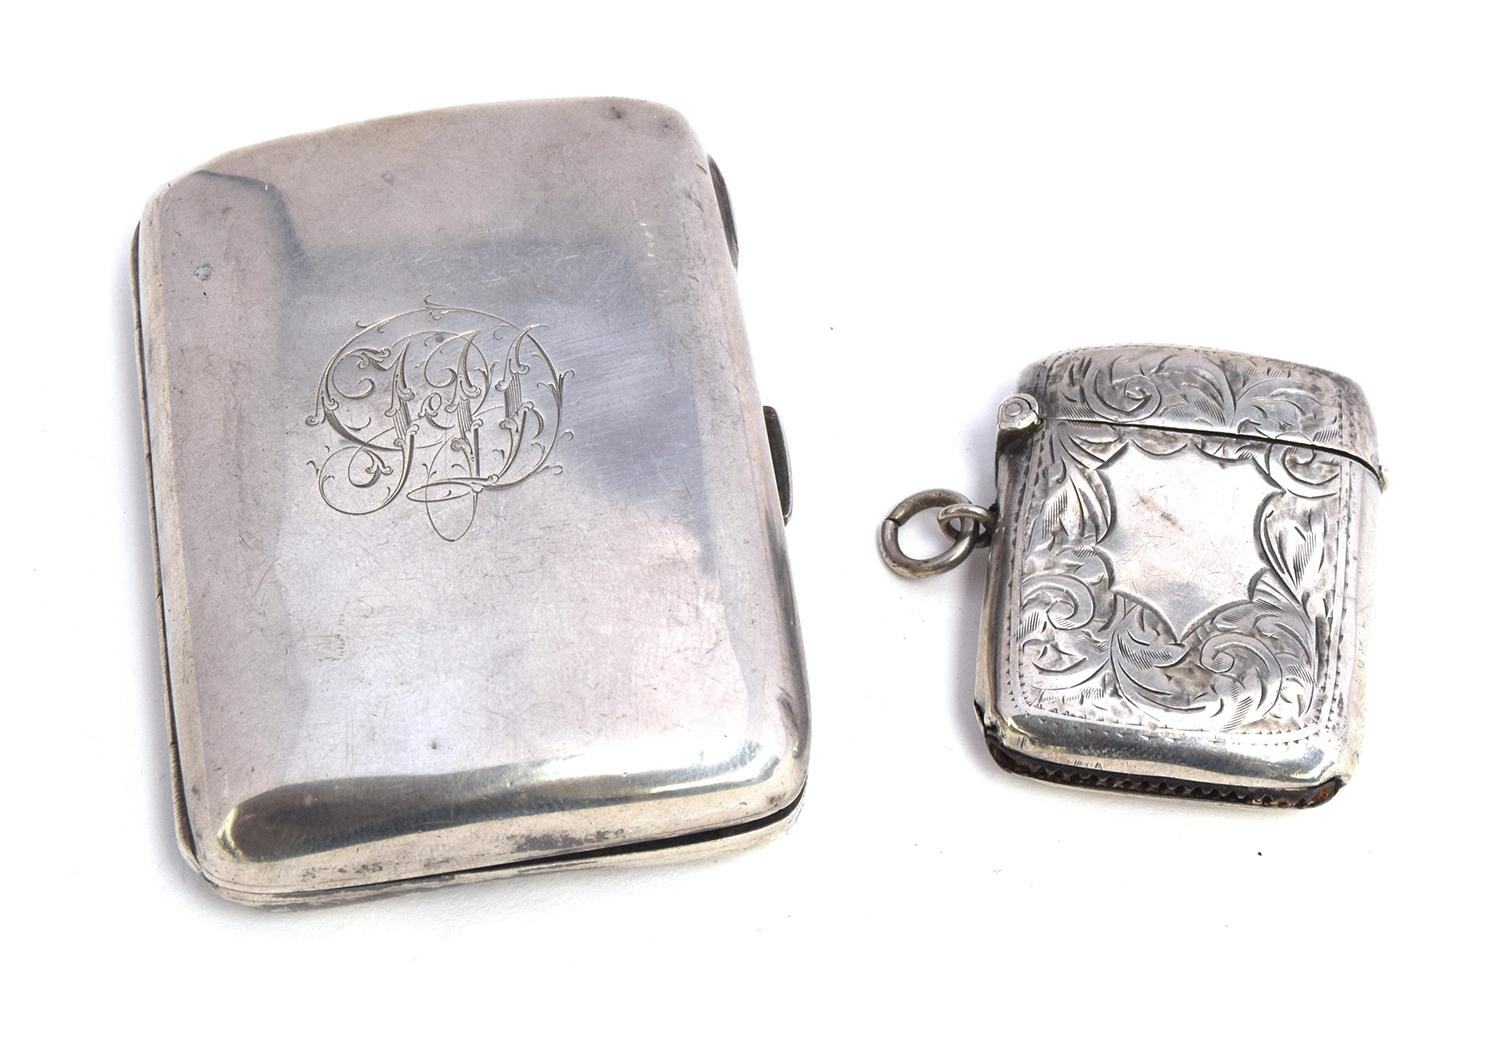 Lot 169 - A silver cigarette case by George Unite & Sons, London 1891, 2.95oz; together with a silver vesta